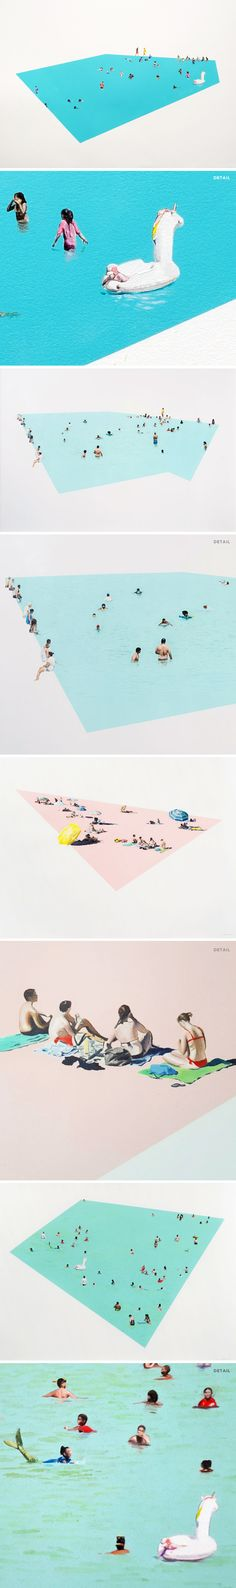 The Jealous Curator /// curated contemporary art /// kirsten beets